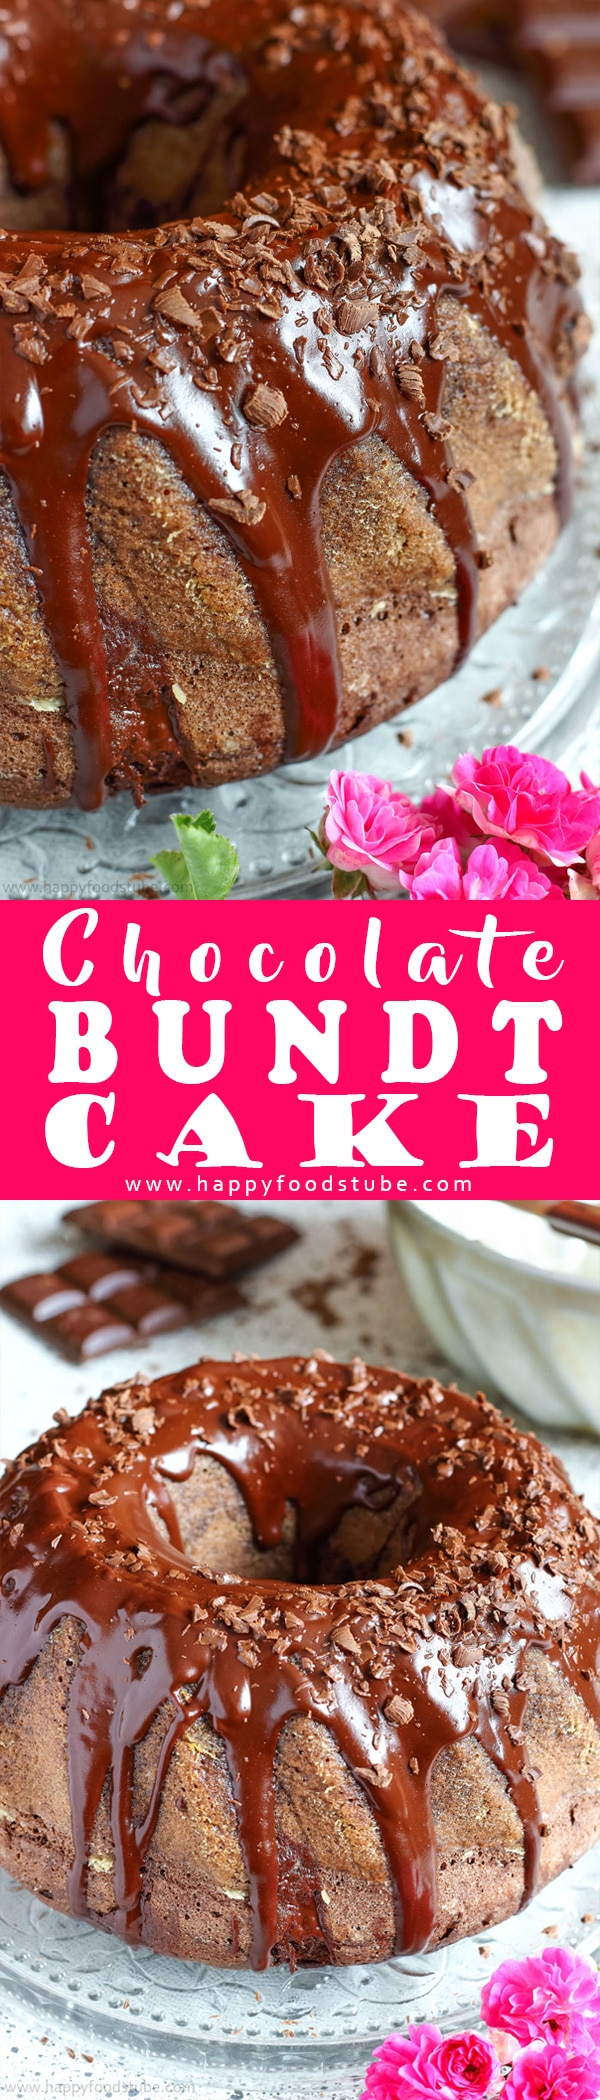 Topped with chocolate glaze and chocolate shavings this chocolate bundt cake is the perfect dessert for any occasion. Makes a great centerpiece! Chocolate bundt cake from scratch. #bundt #chocolatecake #cakerecipes